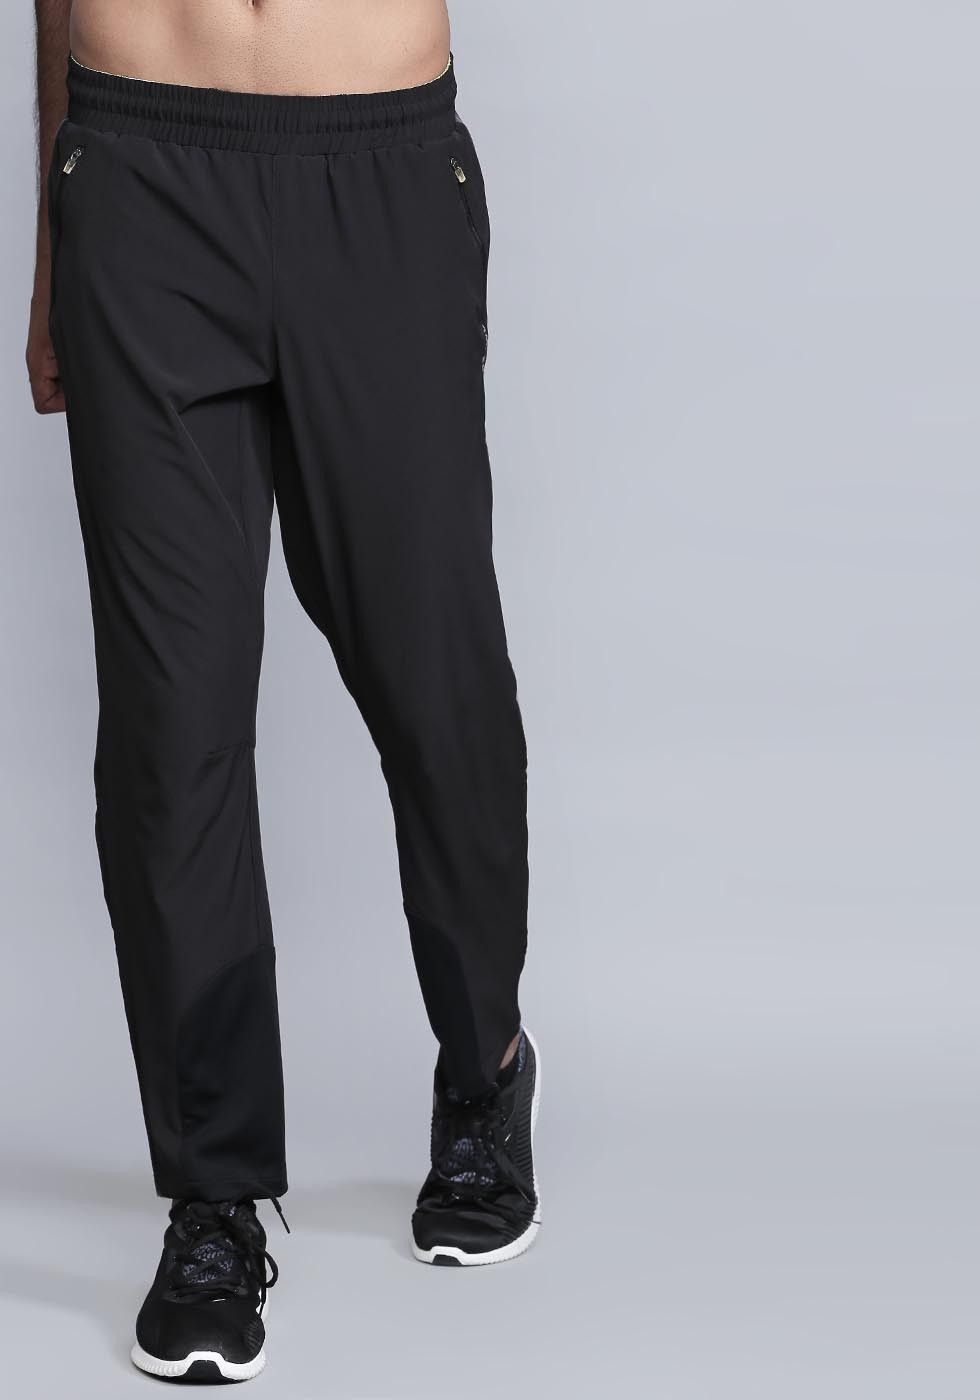 db13e61cc2471 UTILITY PRO TRAINING ACTIVEWEAR TRACK PANTS BY PROWL ₹1,799.00 ...